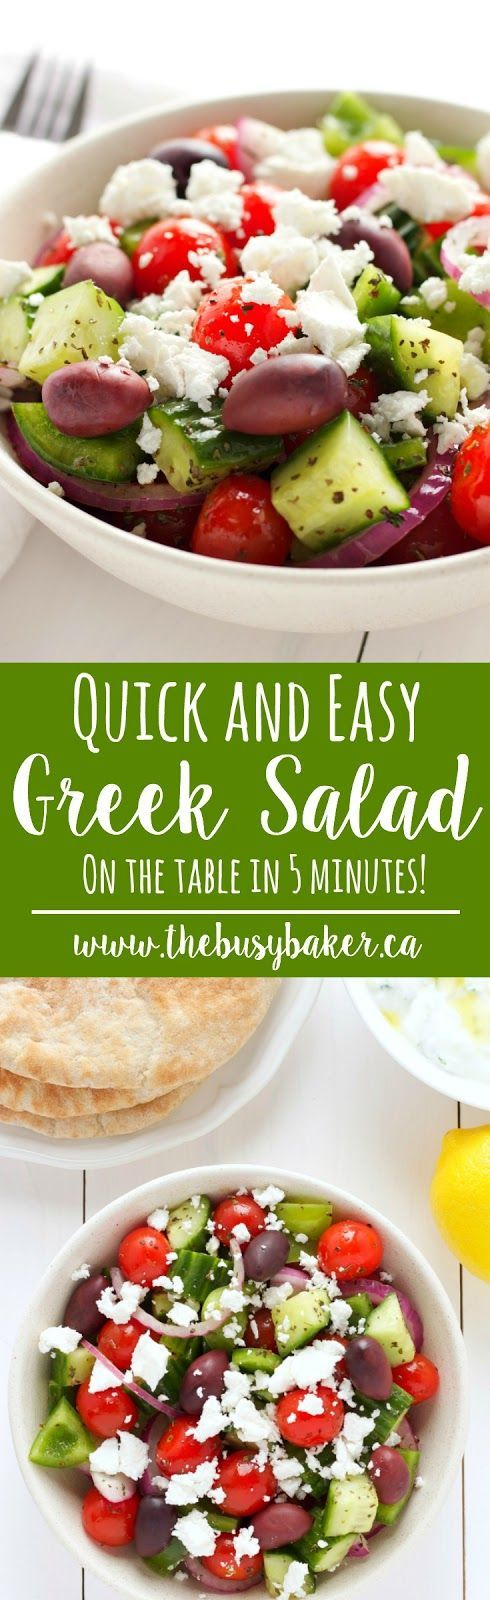 The perfect Easy Greek Salad for your 4th of July Barbecue! www.thebusybaker.ca: